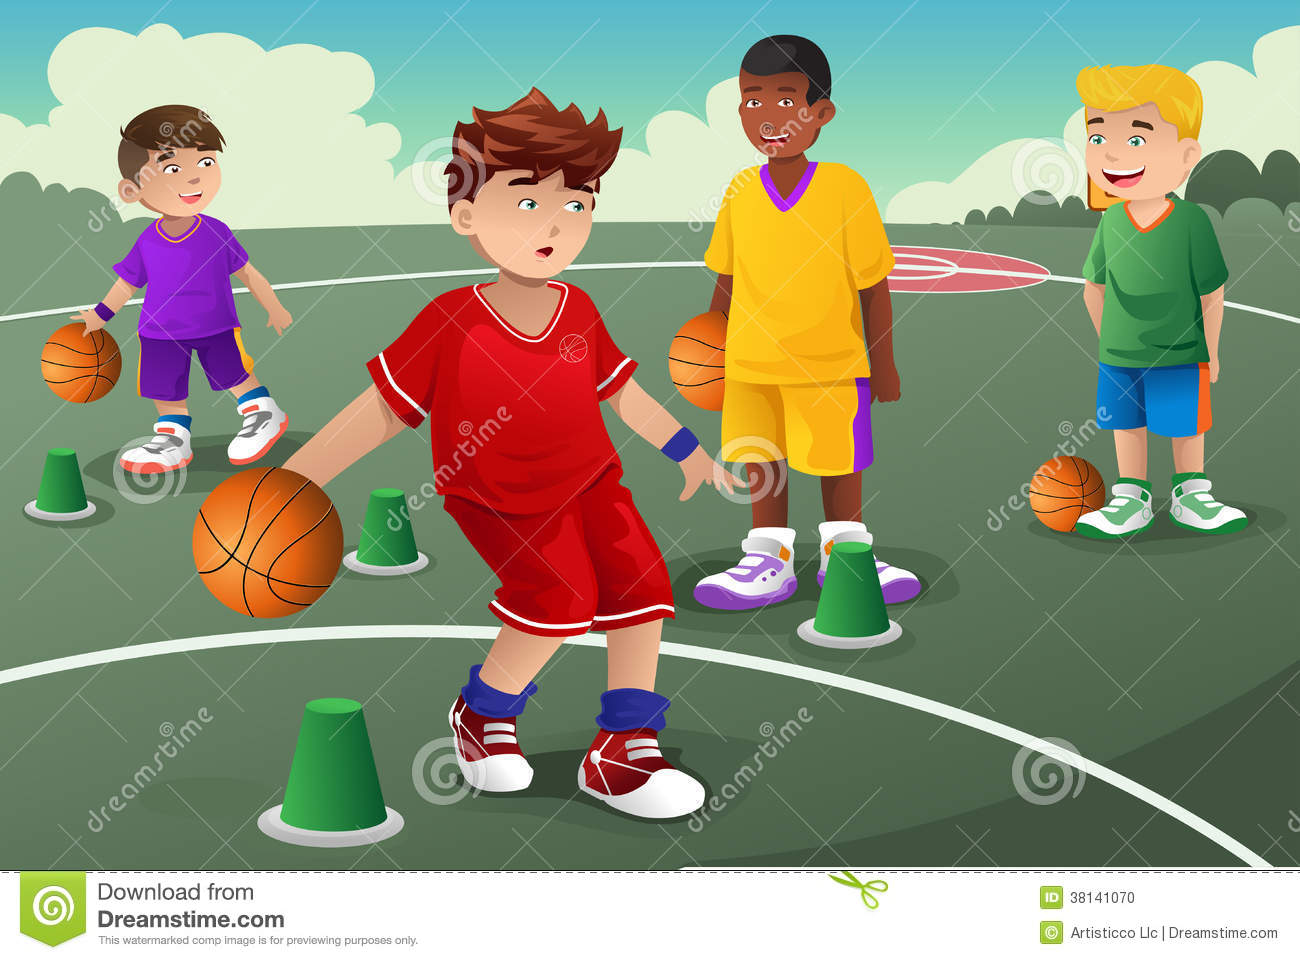 an account of a childs experience in playing basketball Do kids love anything more than playing a real game of basketball i recommend playing small-sided games for the benefits listed here  depending on the amount of players you have, i believe 3 on 3 or 4 on 4 are the best small-sided games to use.